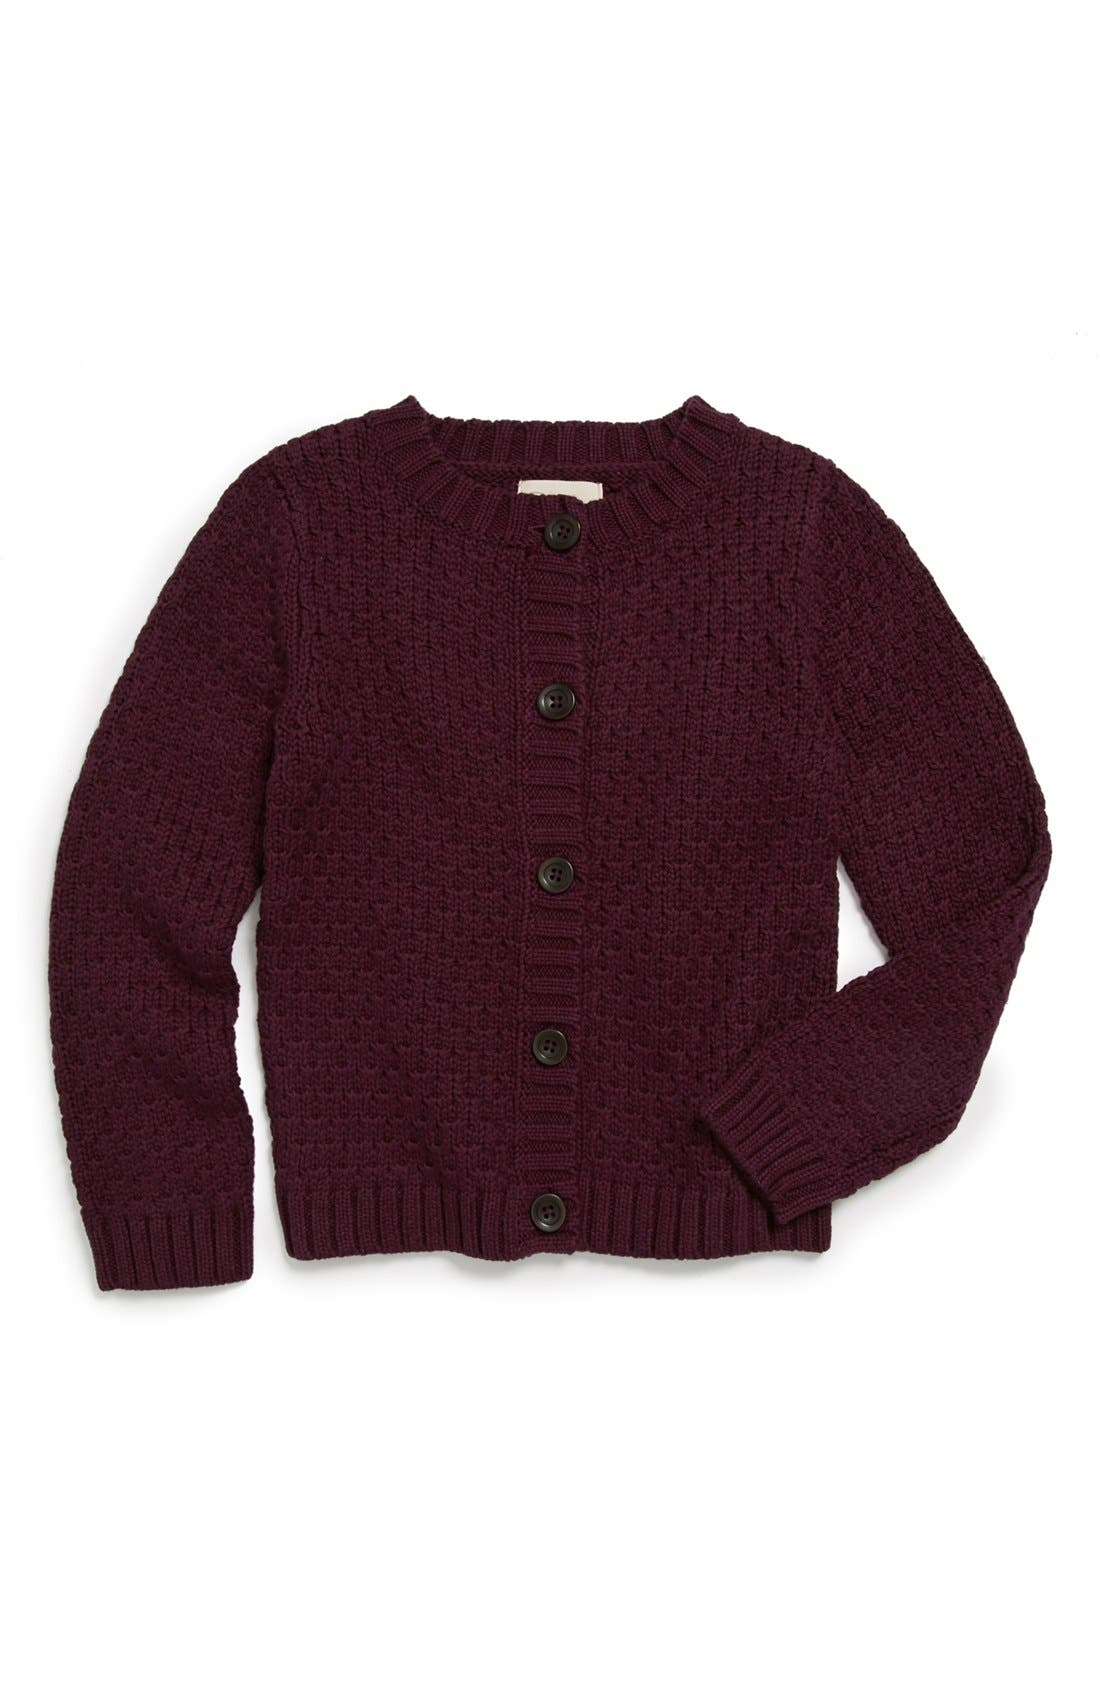 Alternate Image 1 Selected - Peek 'Simone' Cardigan (Toddler Girls, Little Girls & Big Girls)